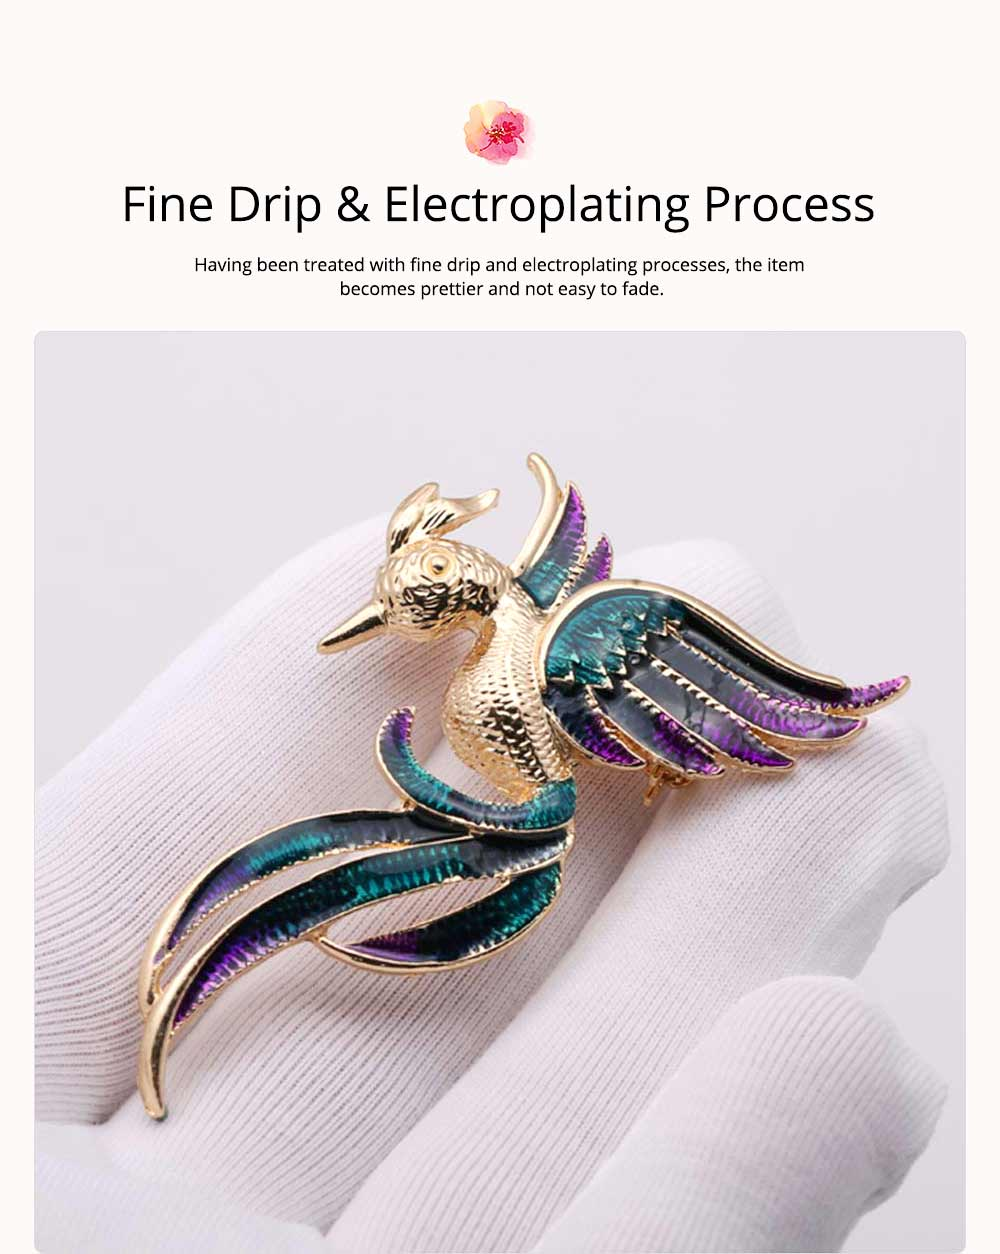 Little Dainty Phoenix Bird Enamel Painted Alloy Breastpin for Women, Colorful Dripping Scarf Clothes Decoration Accessories Animal Brooch 2